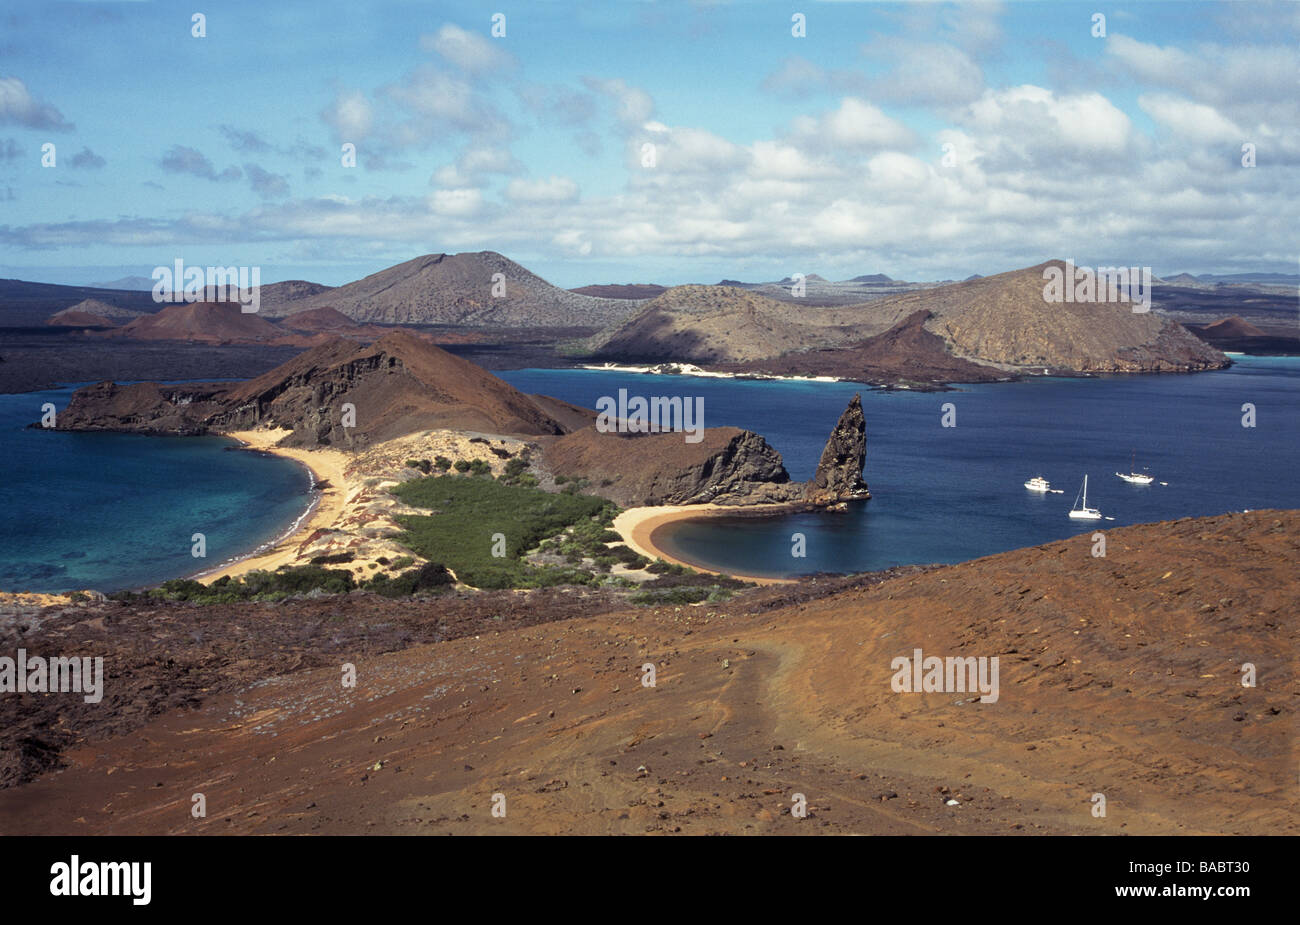 Galapagos Islands.Bartholomew Island.View from top of the island towards James Island. - Stock Image